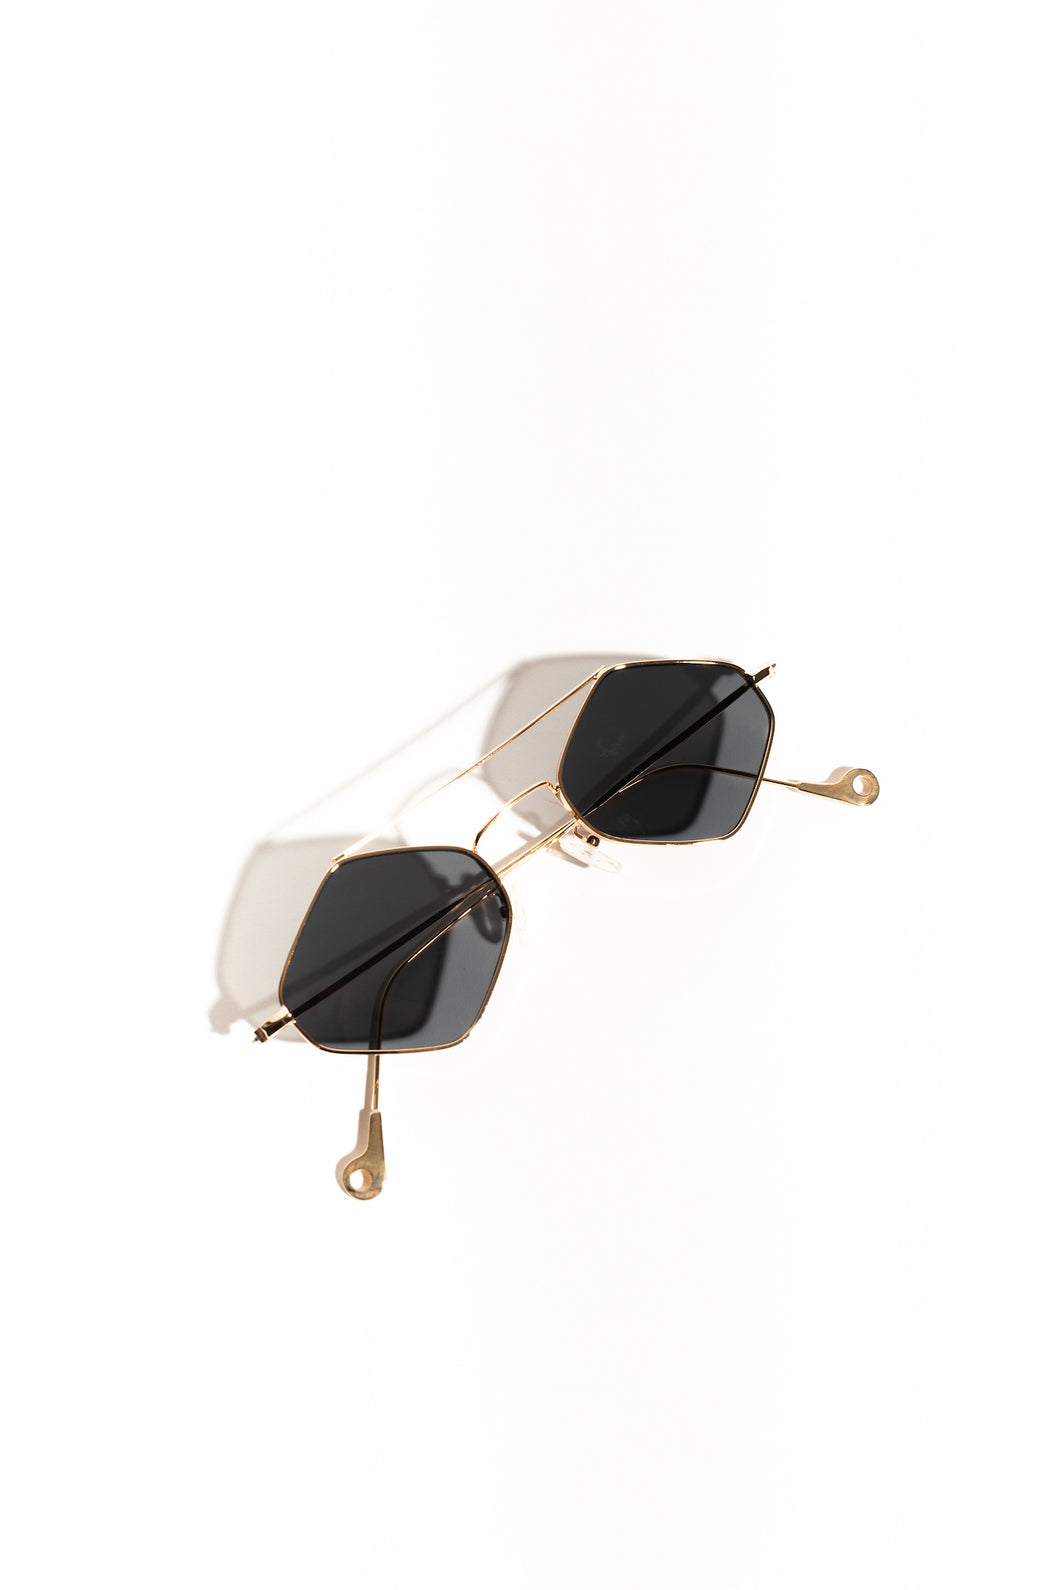 Rita Diamond Frame Sunglasses - Gold